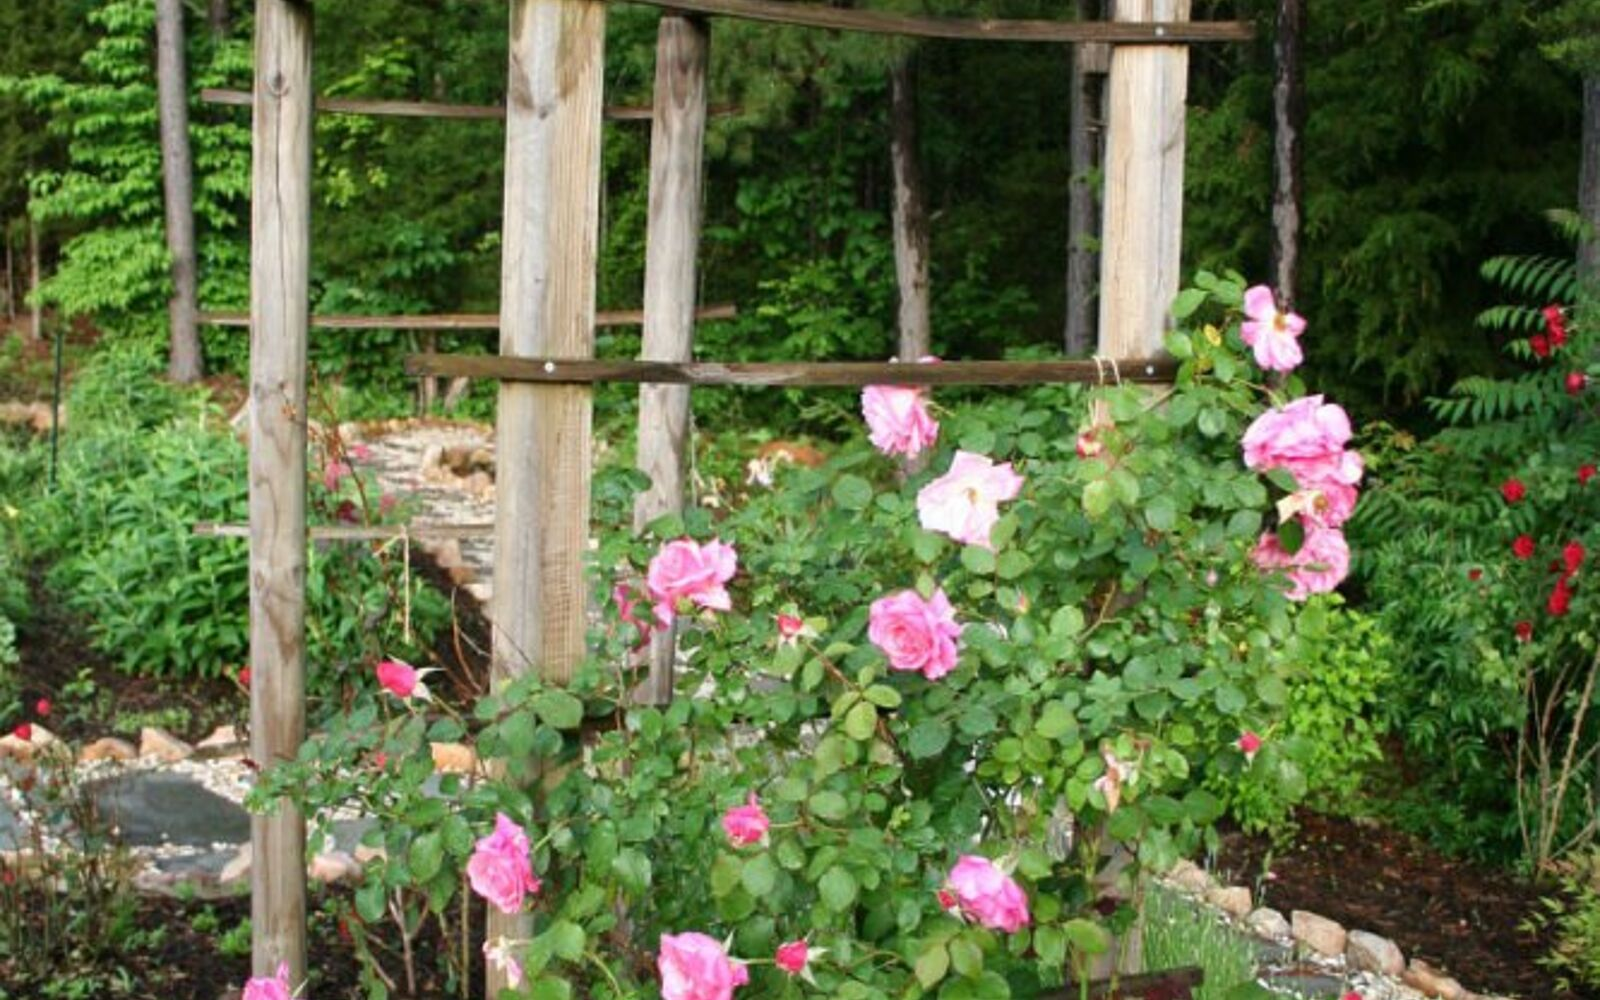 s 17 ways to build a gorgeous garden trellis this summer, gardening, Nail scrap lumber together for an arbor